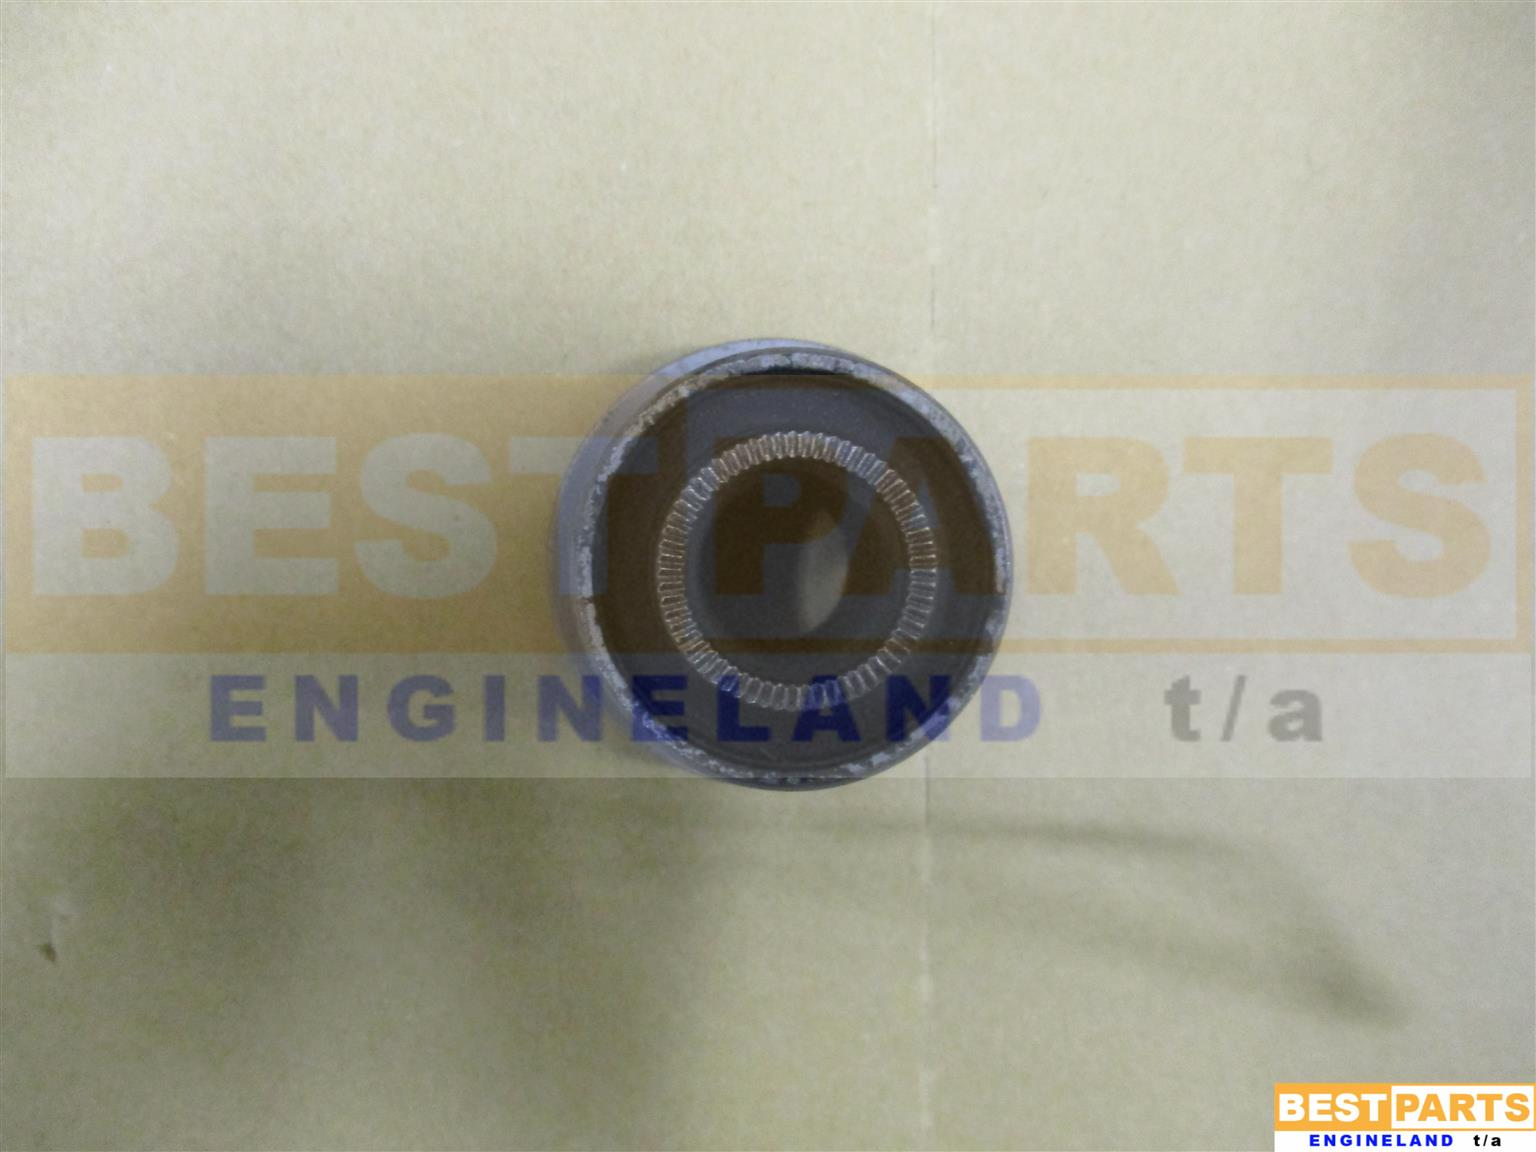 Kia K2700 Spares are available